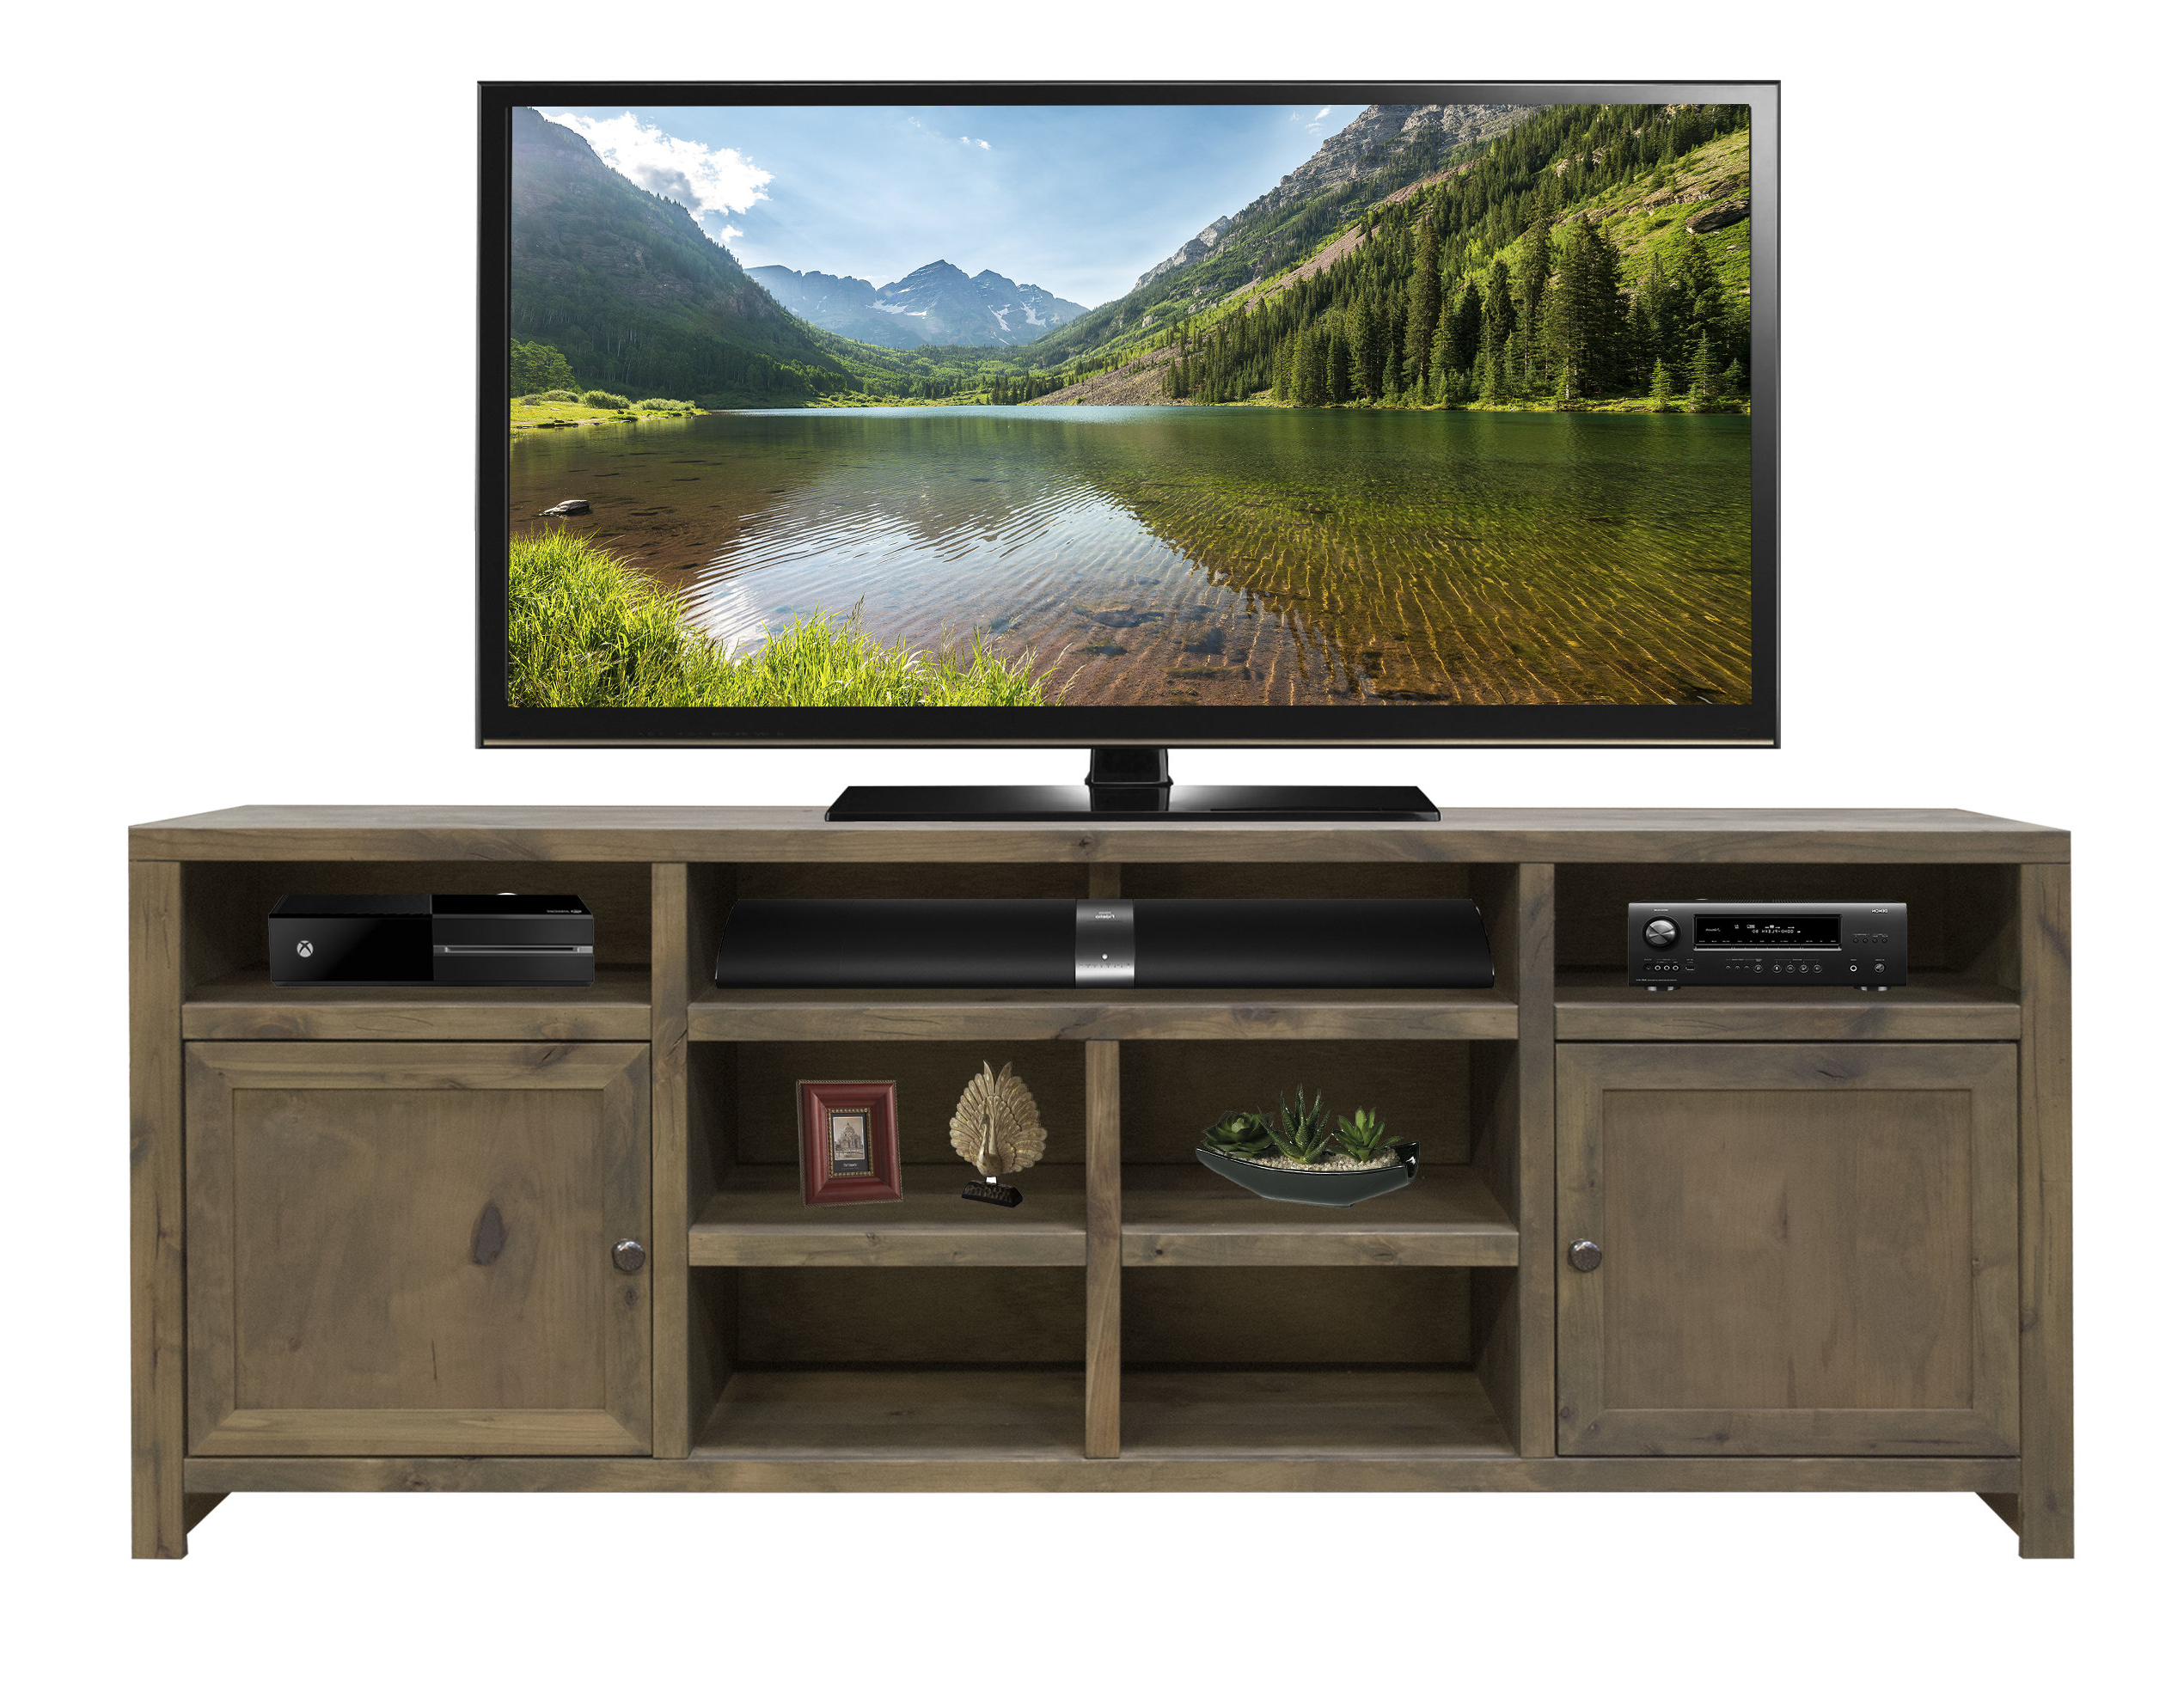 70 Inch Tv Stands | Joss & Main Intended For Canyon 74 Inch Tv Stands (Gallery 15 of 20)